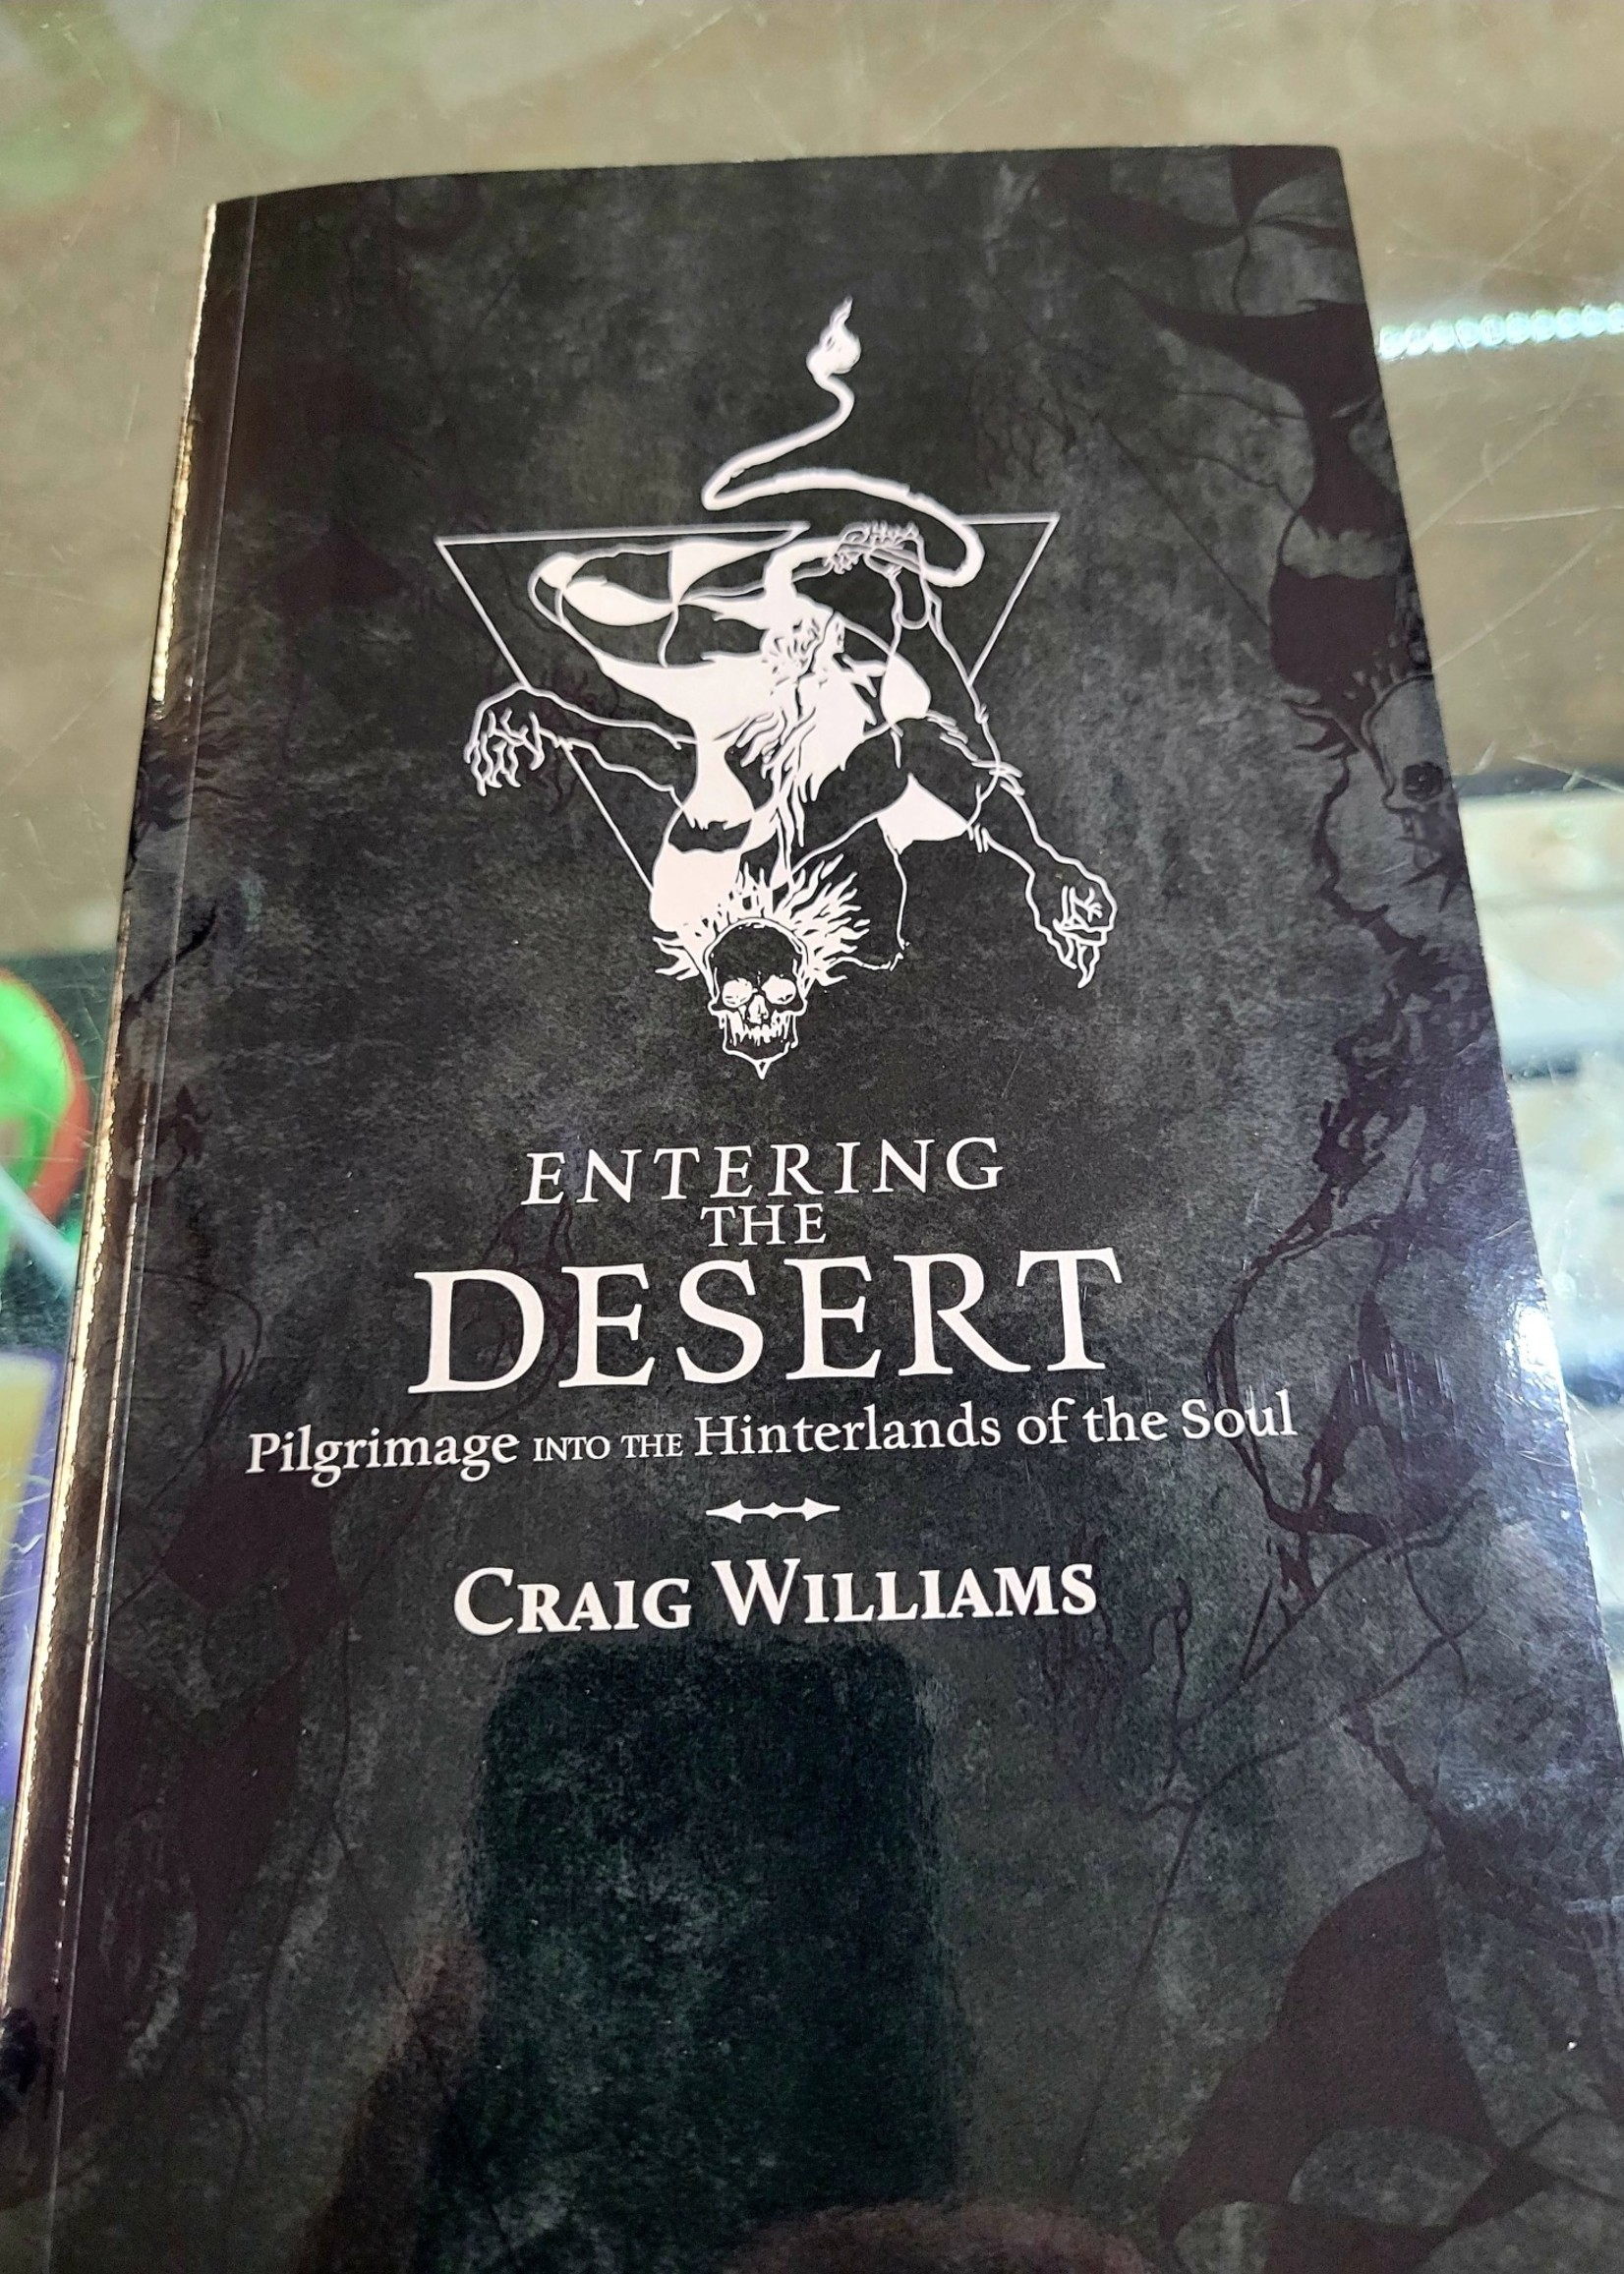 Entering the Desert Pilgrimage into the Hinterlands of the Soul   by Craig Williams